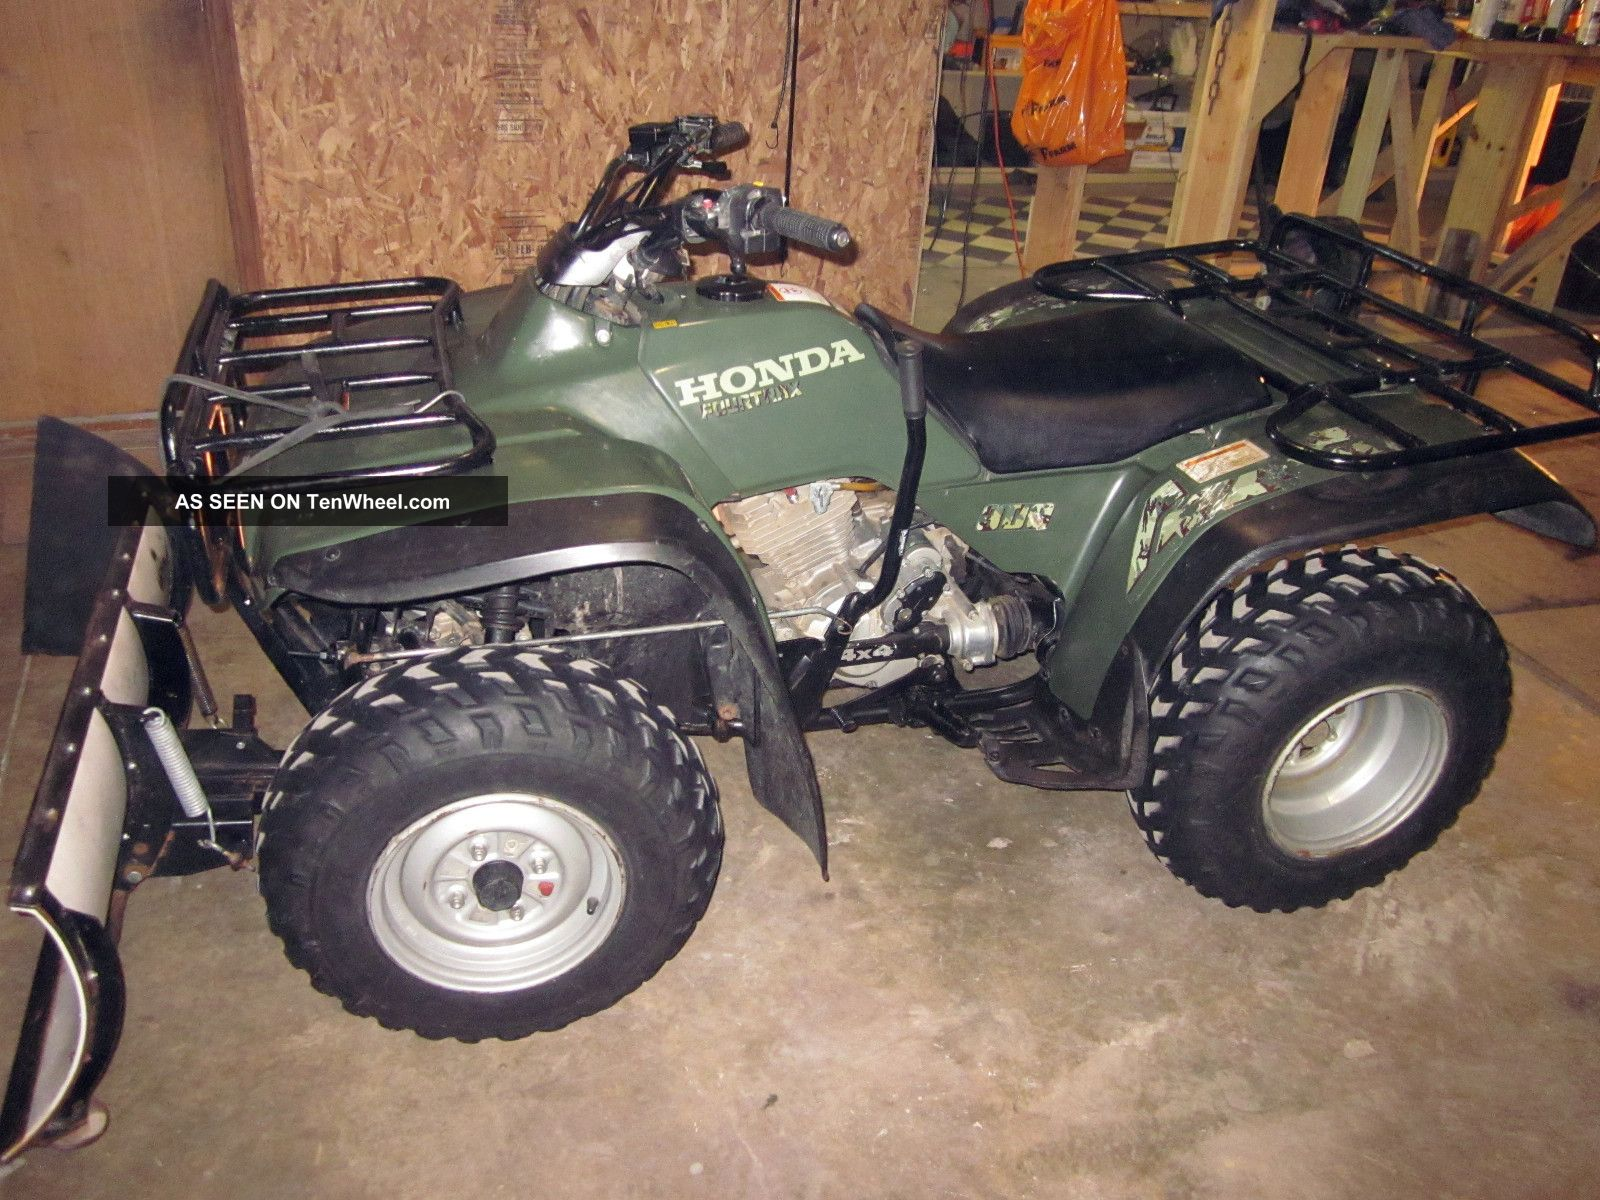 download free honda fourtrax 300 4x4 owners manual honda fourtrax 300 4x4 manual 1988 honda fourtrax 300 manual